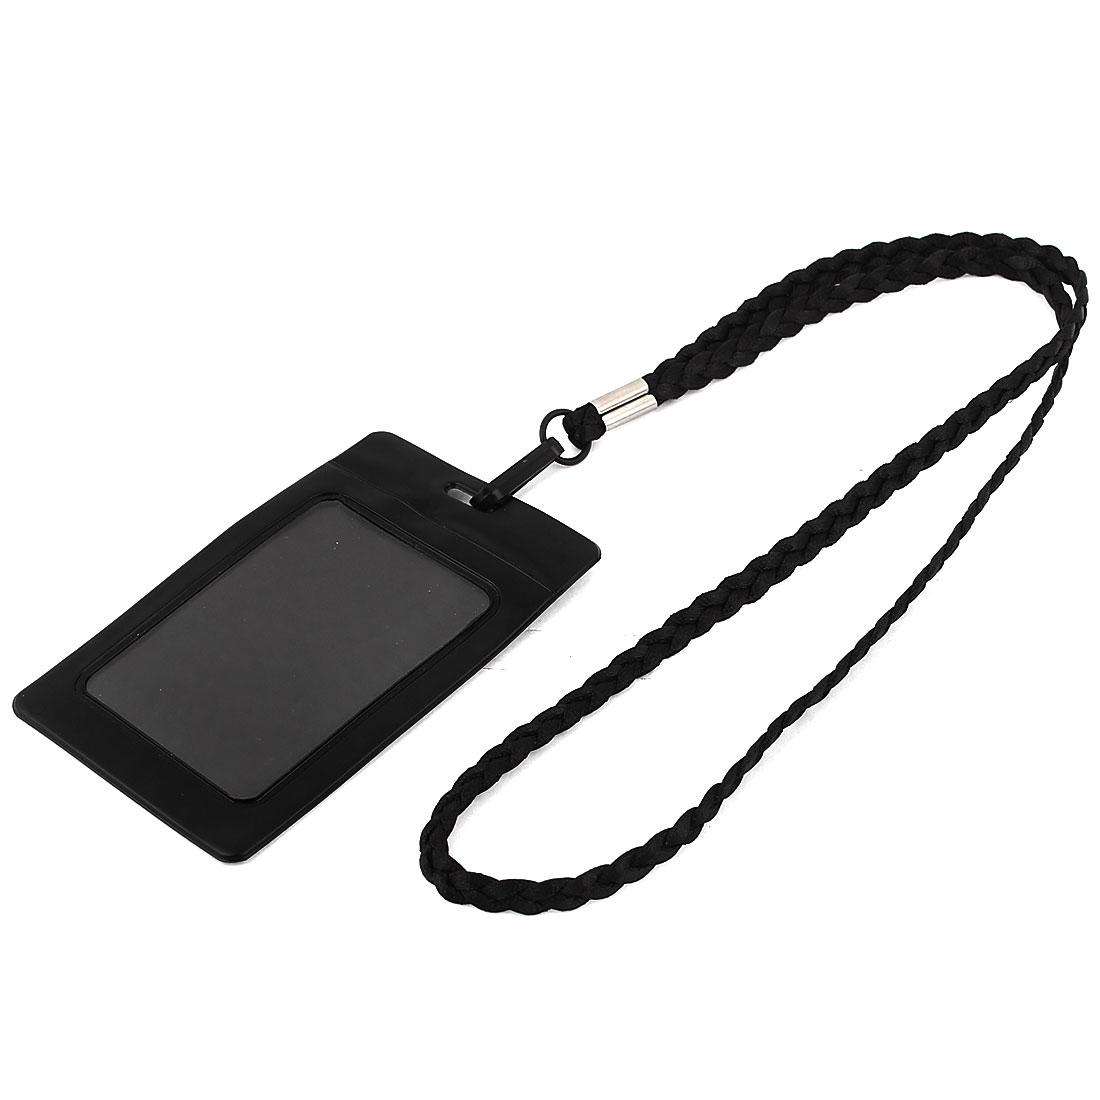 Plastic Vertical Style Lanyard Neck Strap Business Work ID Card Holder Black